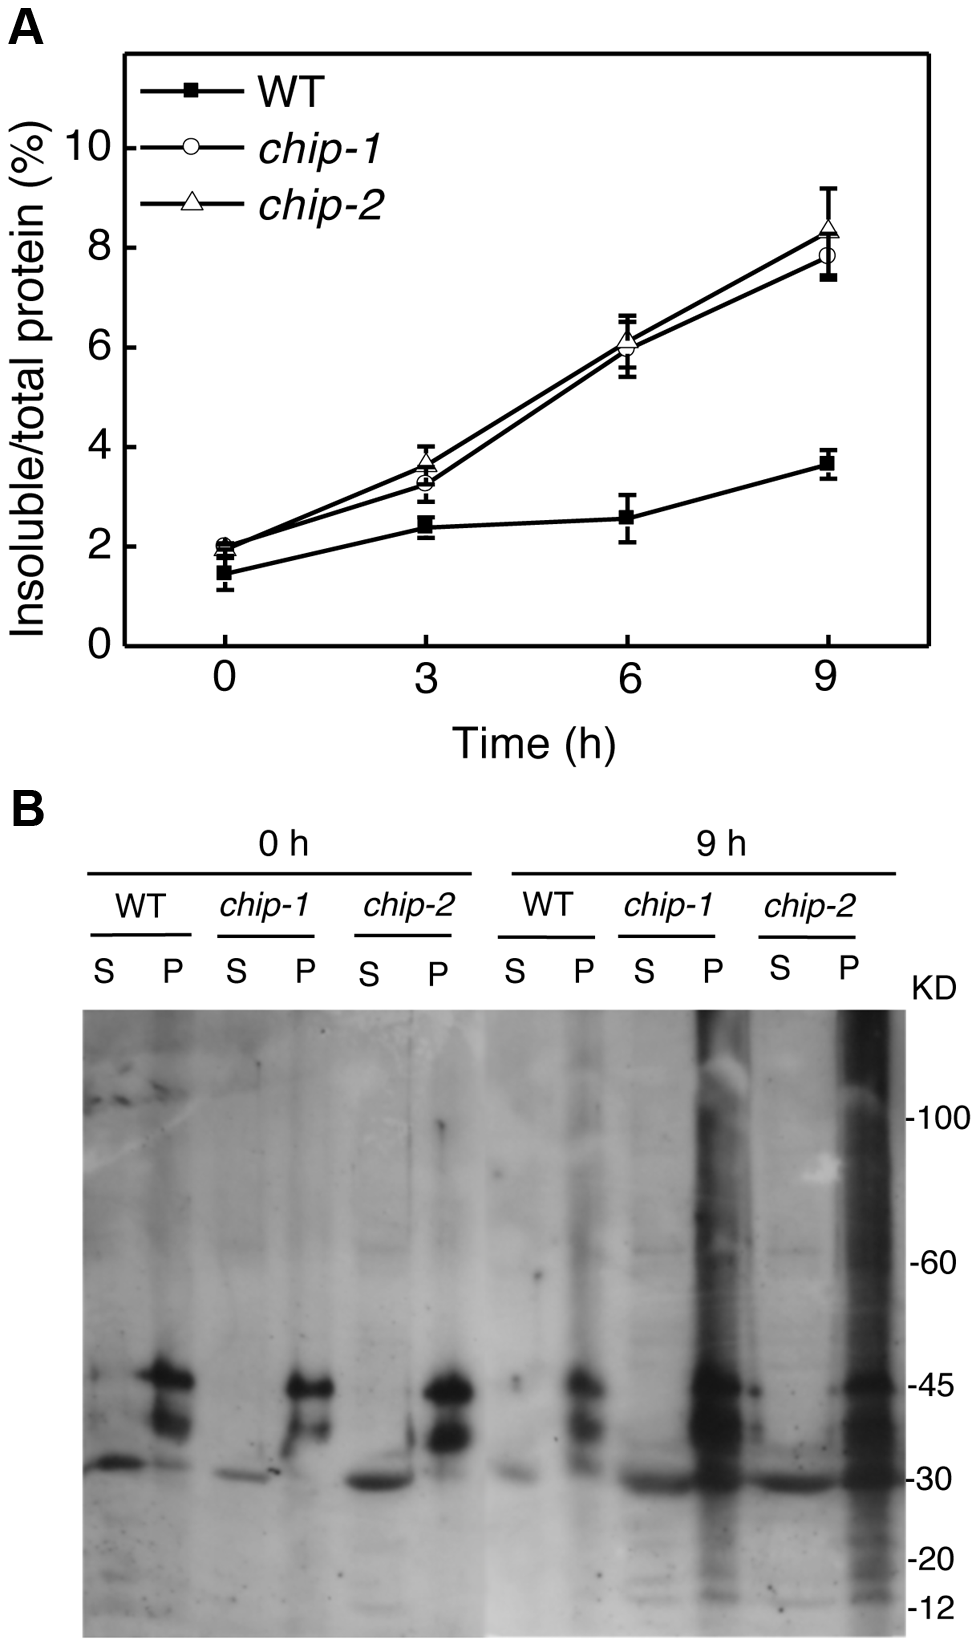 Increased accumulation of insoluble ubiquitinated proteins in the <i>chip</i> mutants under heat stress.